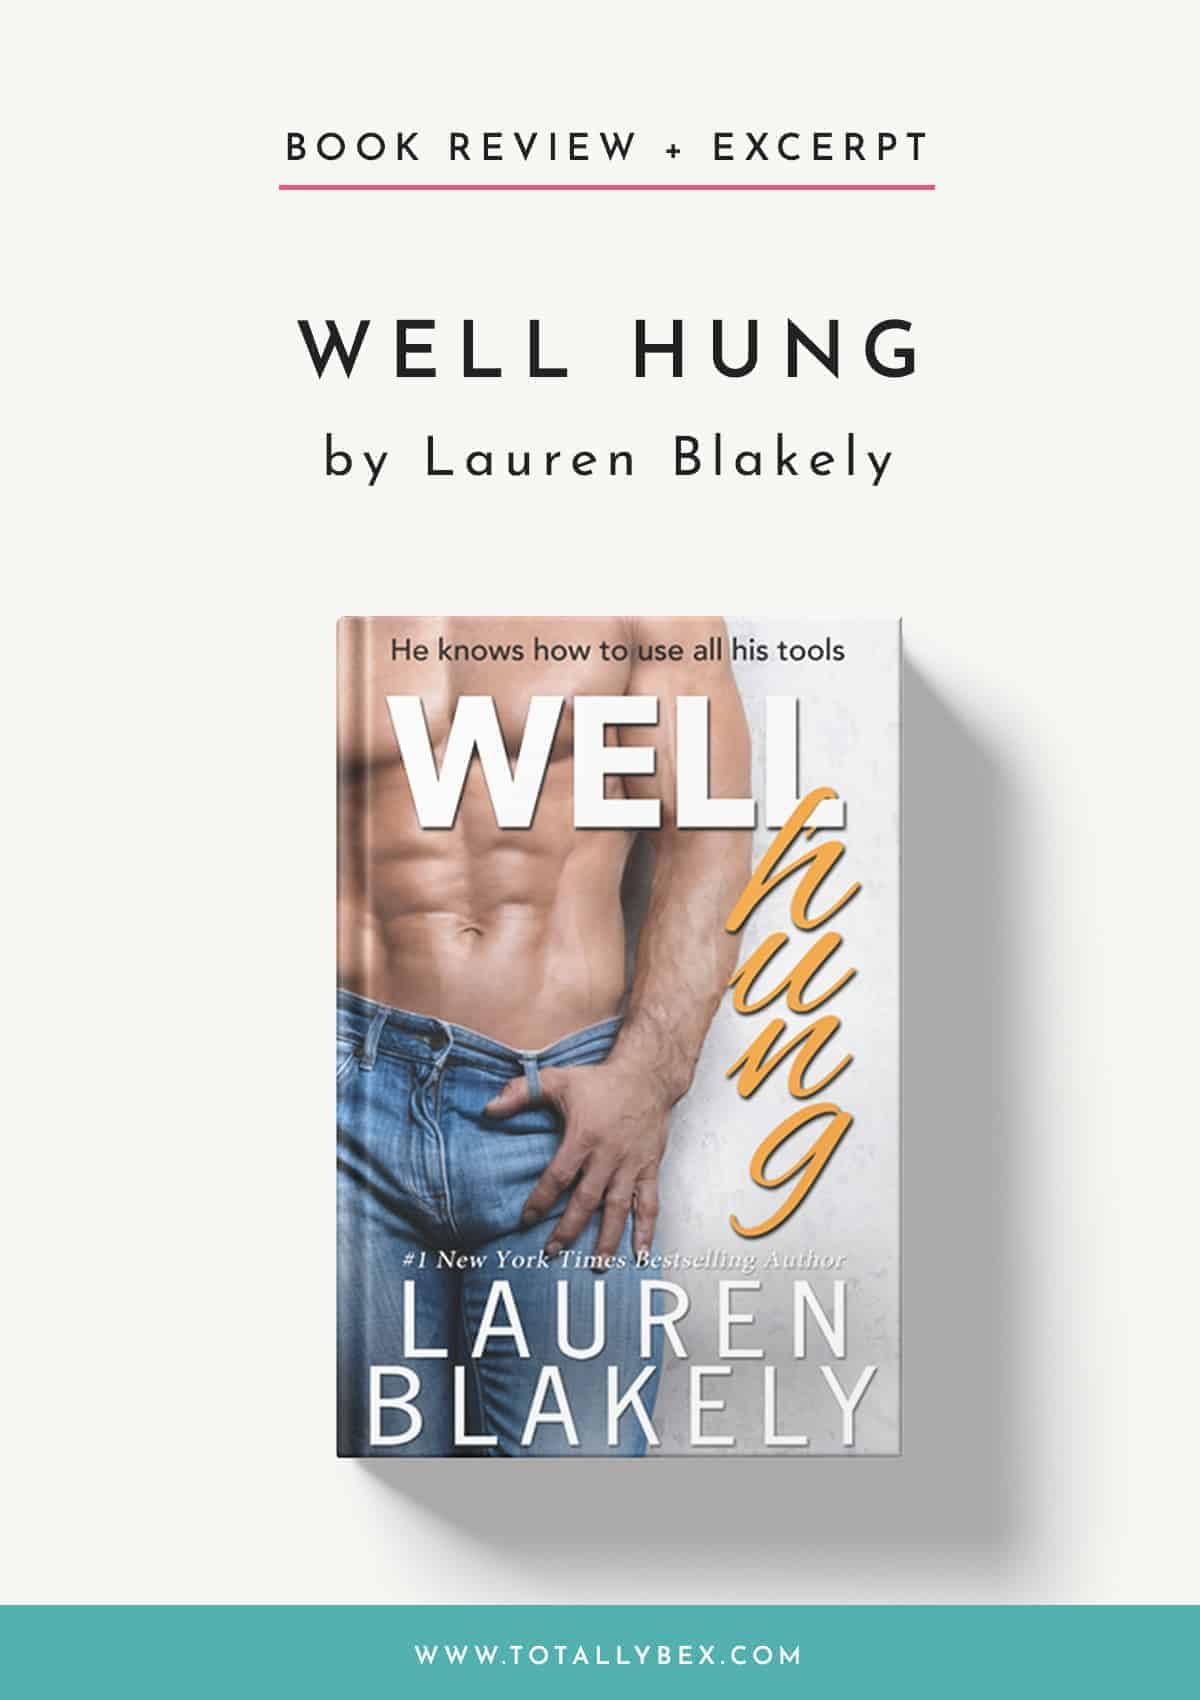 Well Hung by Lauren Blakely-Review + Excerpt